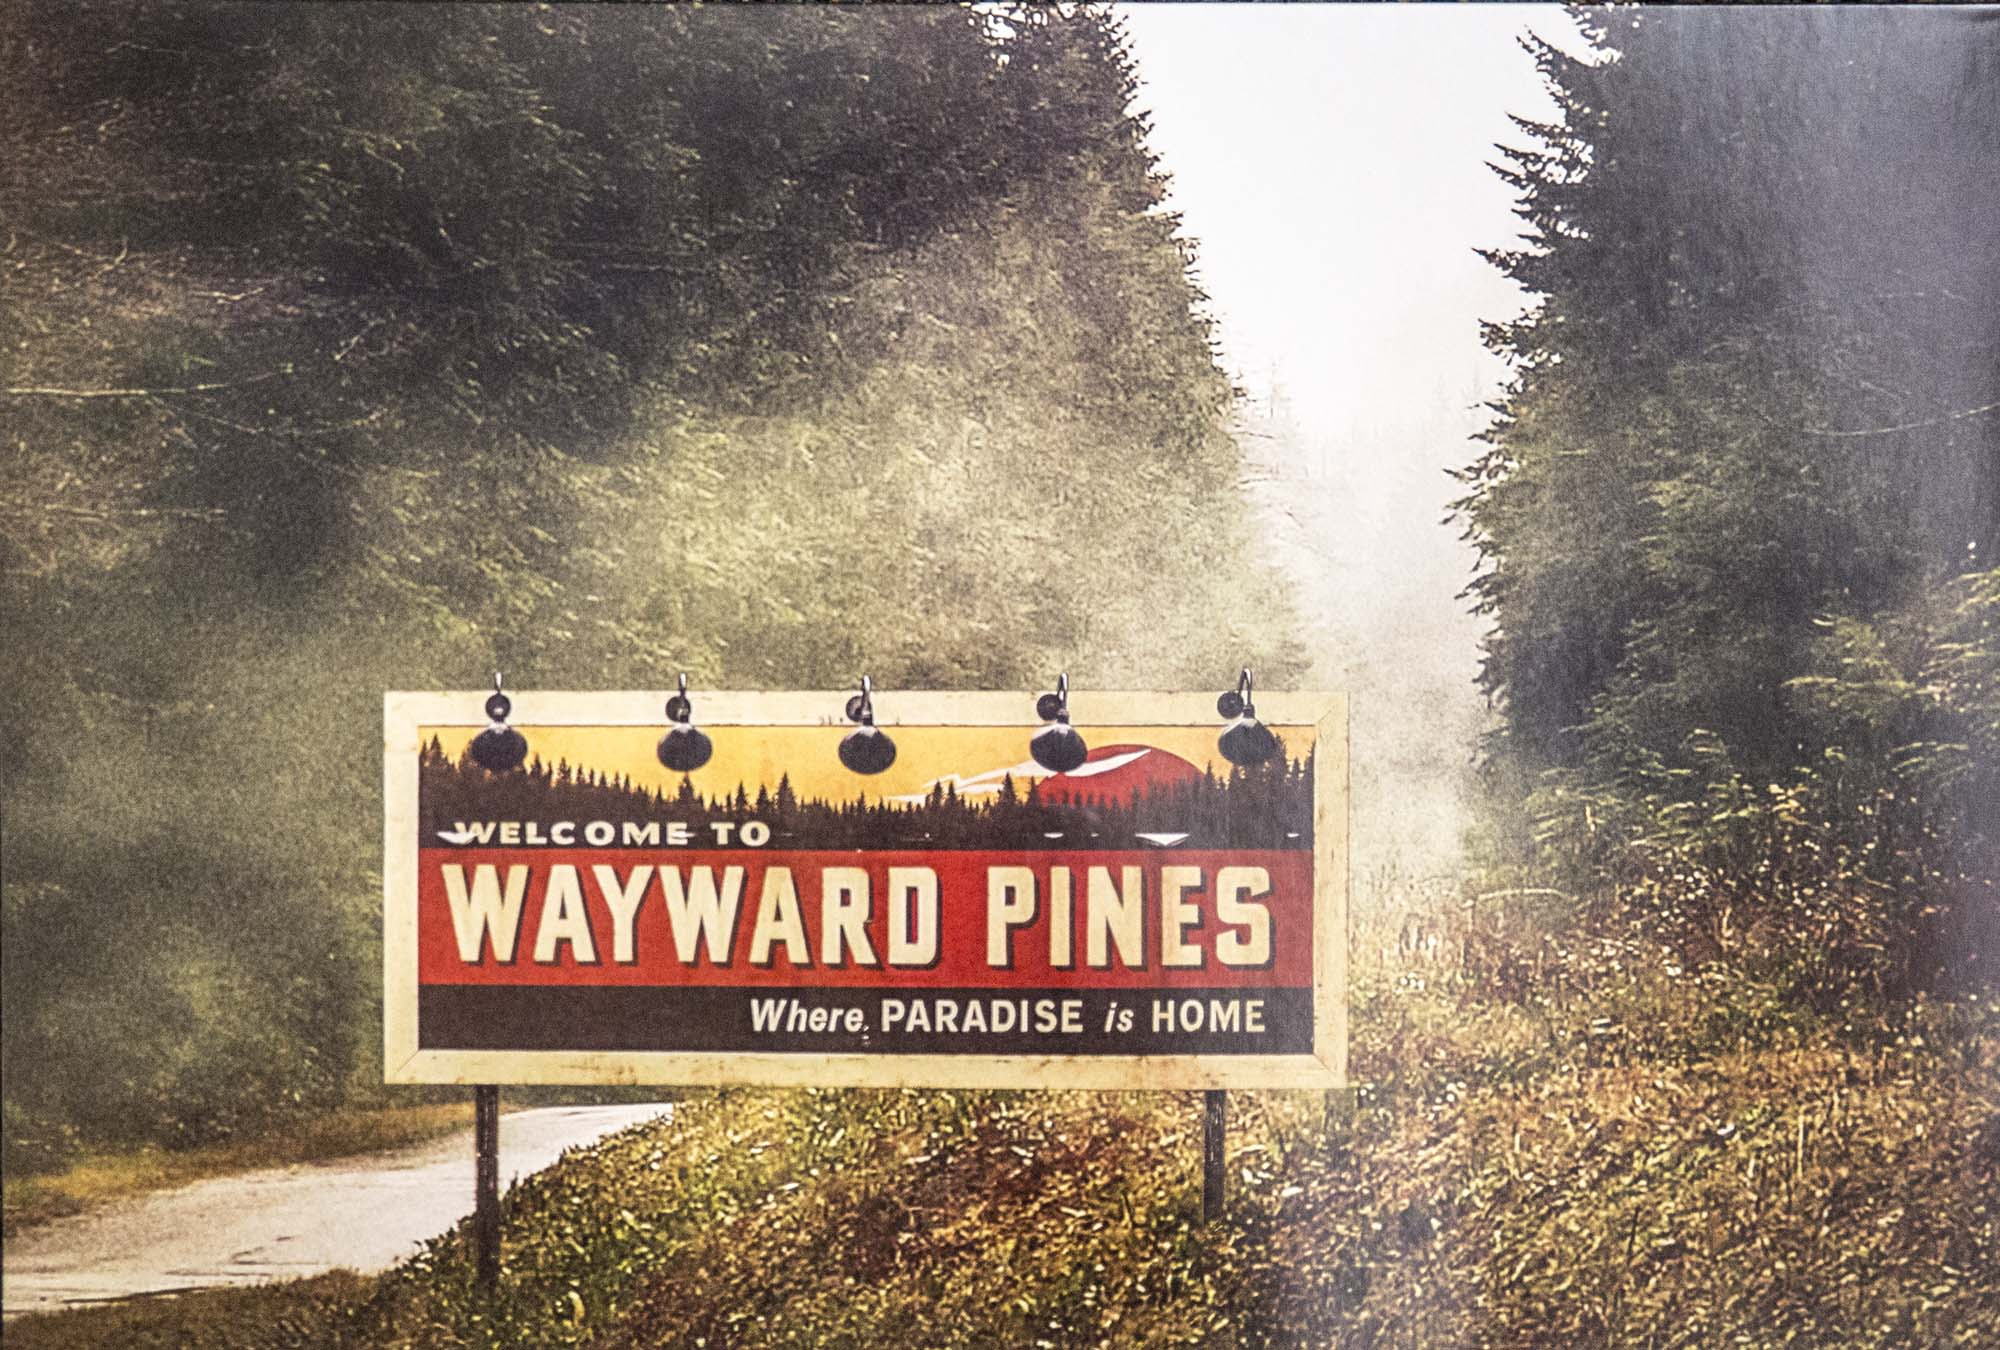 Amazing Wayward Pines Pictures & Backgrounds